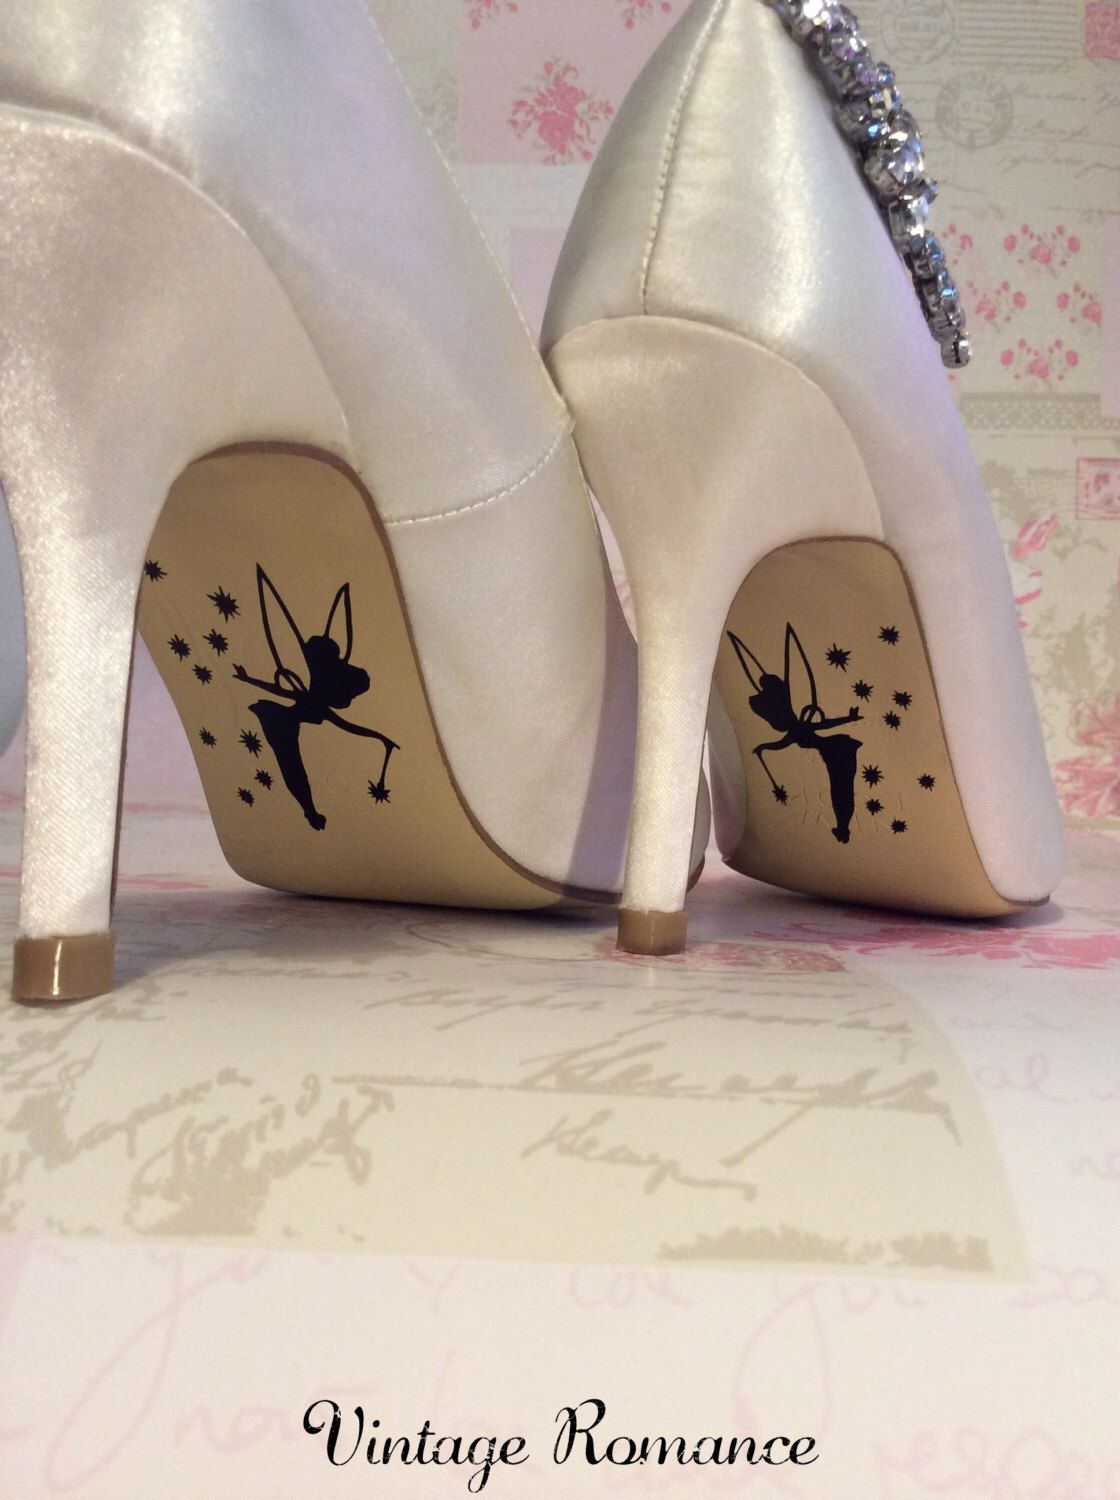 Disney Wedding Day Shoe Sole Vinyl Decals Stickers Tinkerbell By Vintageromance2017 On Etsy Https